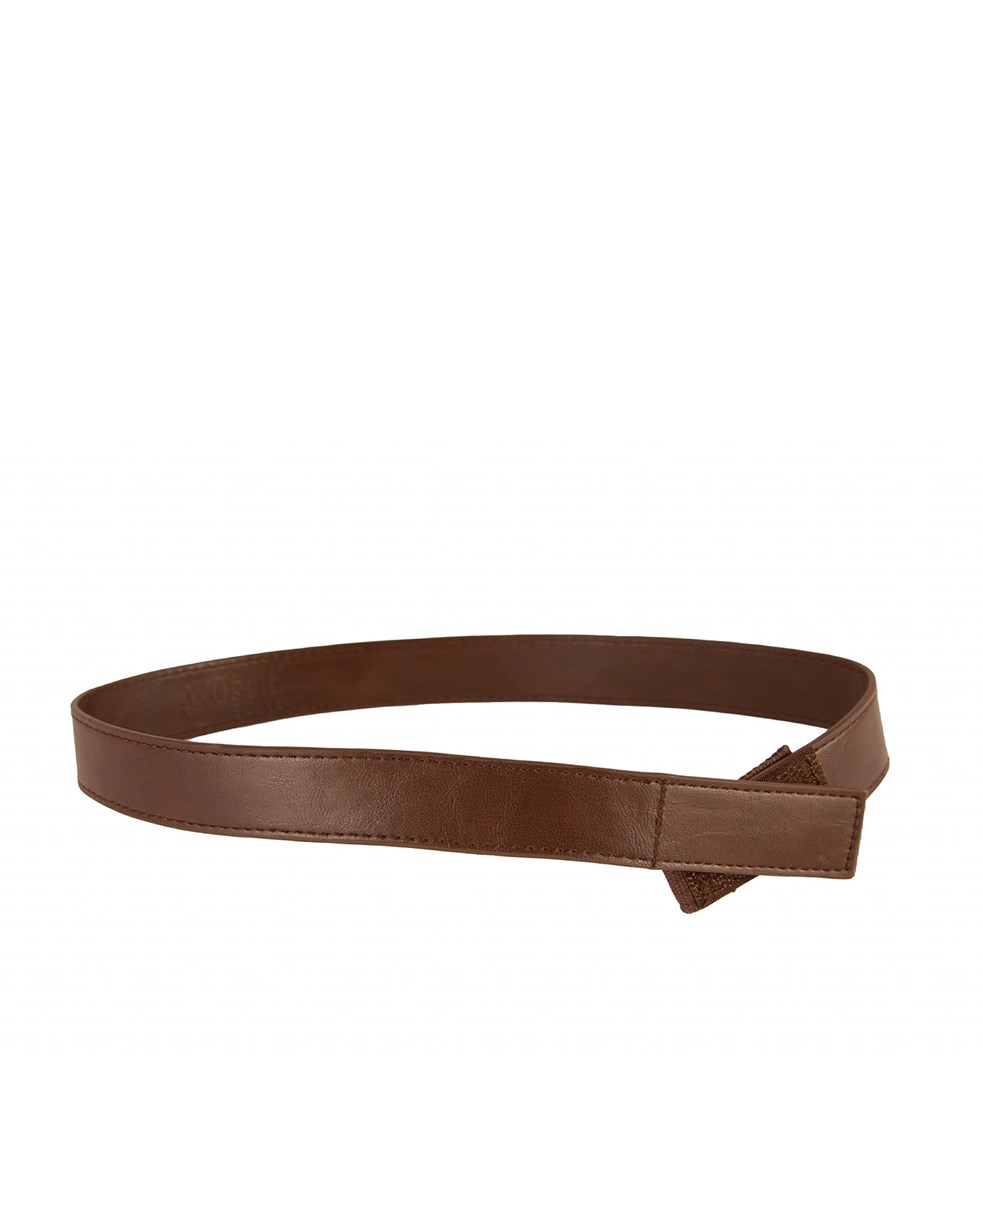 Myself Belts - Leather Belt (Light Brown)